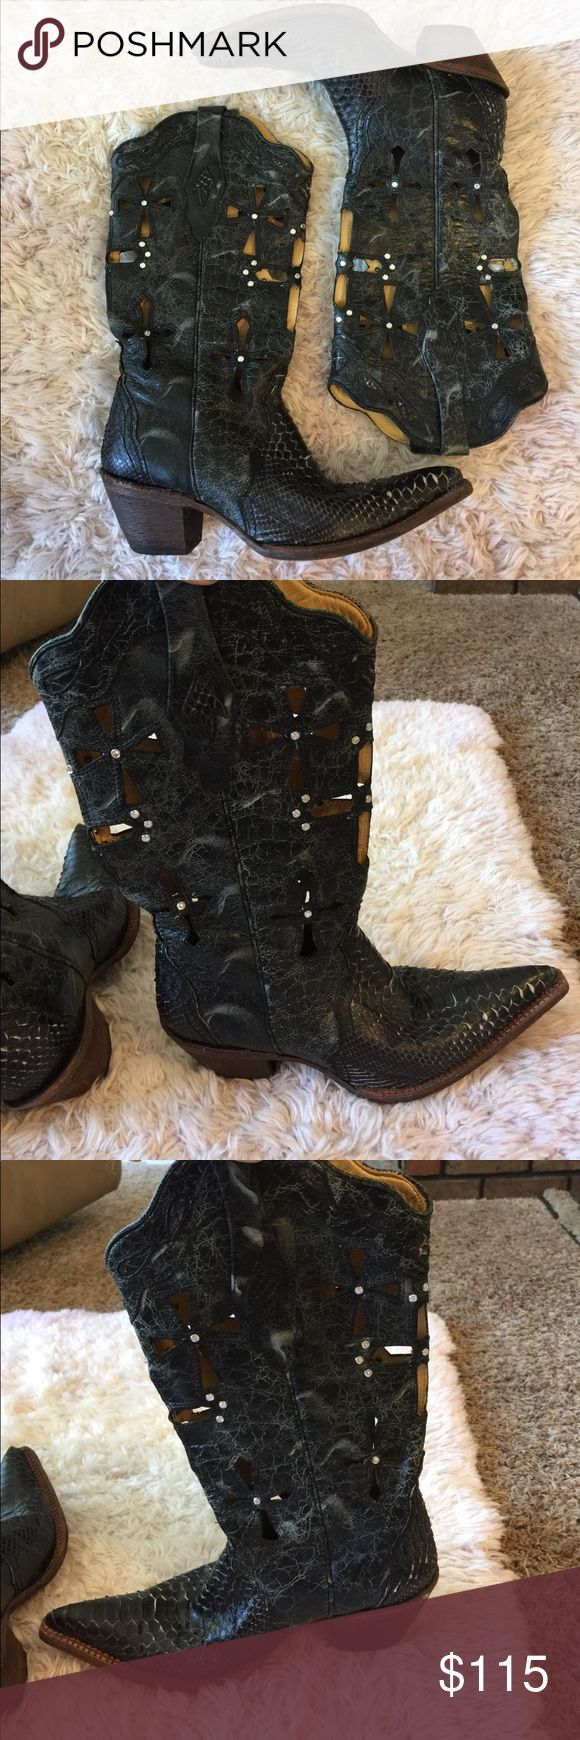 Corral Vintage Python Boots Black Corral Vintage boots with distressed look. They have cross on them with little stud diamonds. Only worn a few times. Size 9m Corral Vintage Shoes